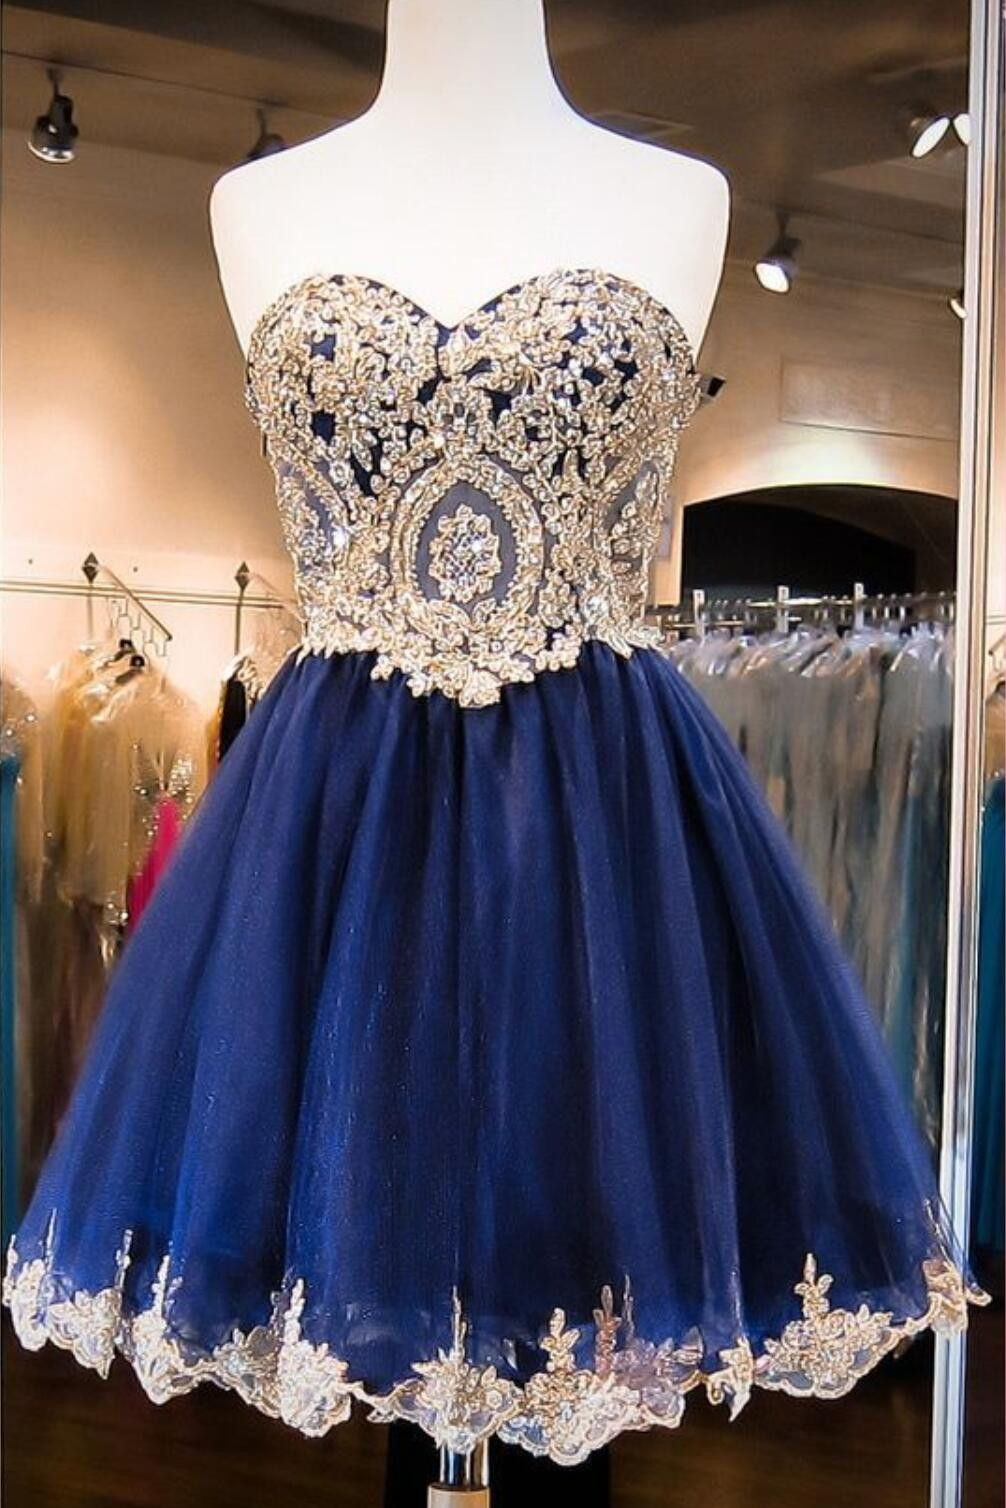 bfa720ad2f4 Navy Blue Skirt Gold Lace Beaded homecoming prom dresses